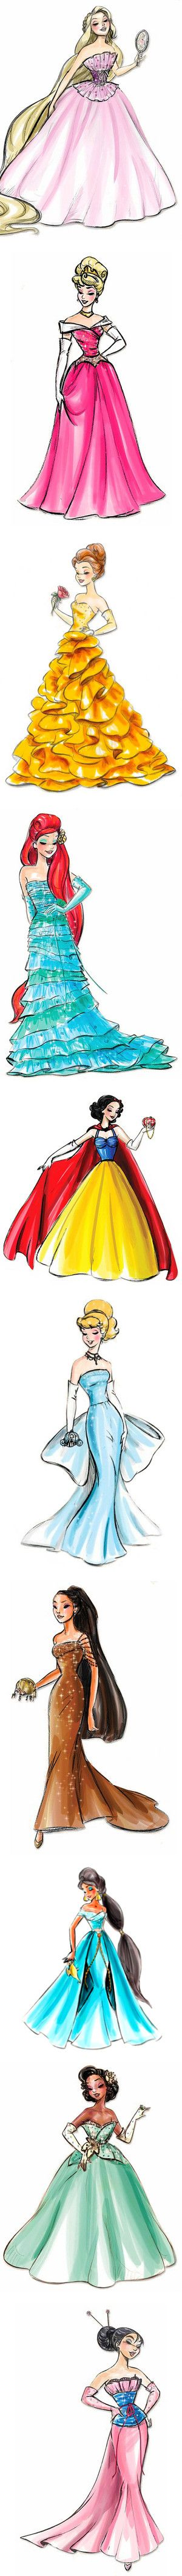 Disney Princess Prom by keyaluvsfrank on Polyvore